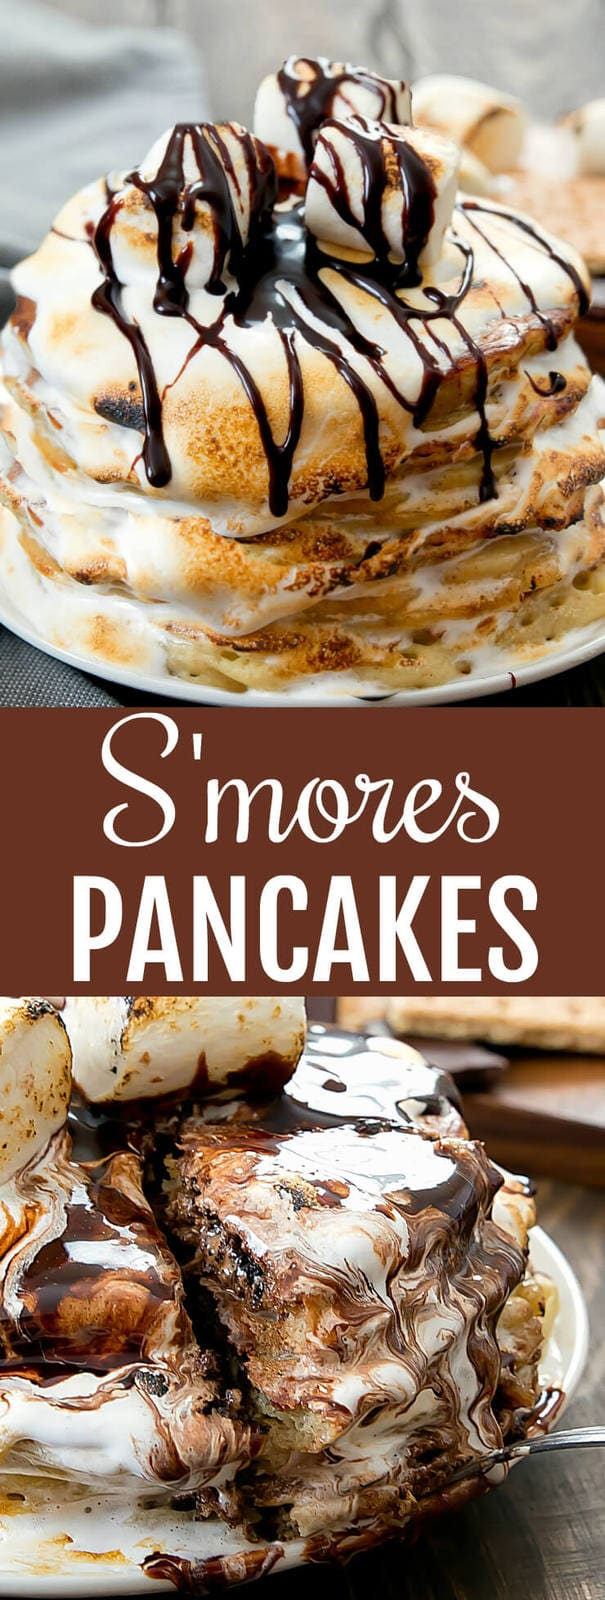 S'mores Pancakes. Graham crackers and chocolate chips studded pancakes topped with torched marshmallow fluff and chocolate syrup. A fun breakfast or brunch treat!